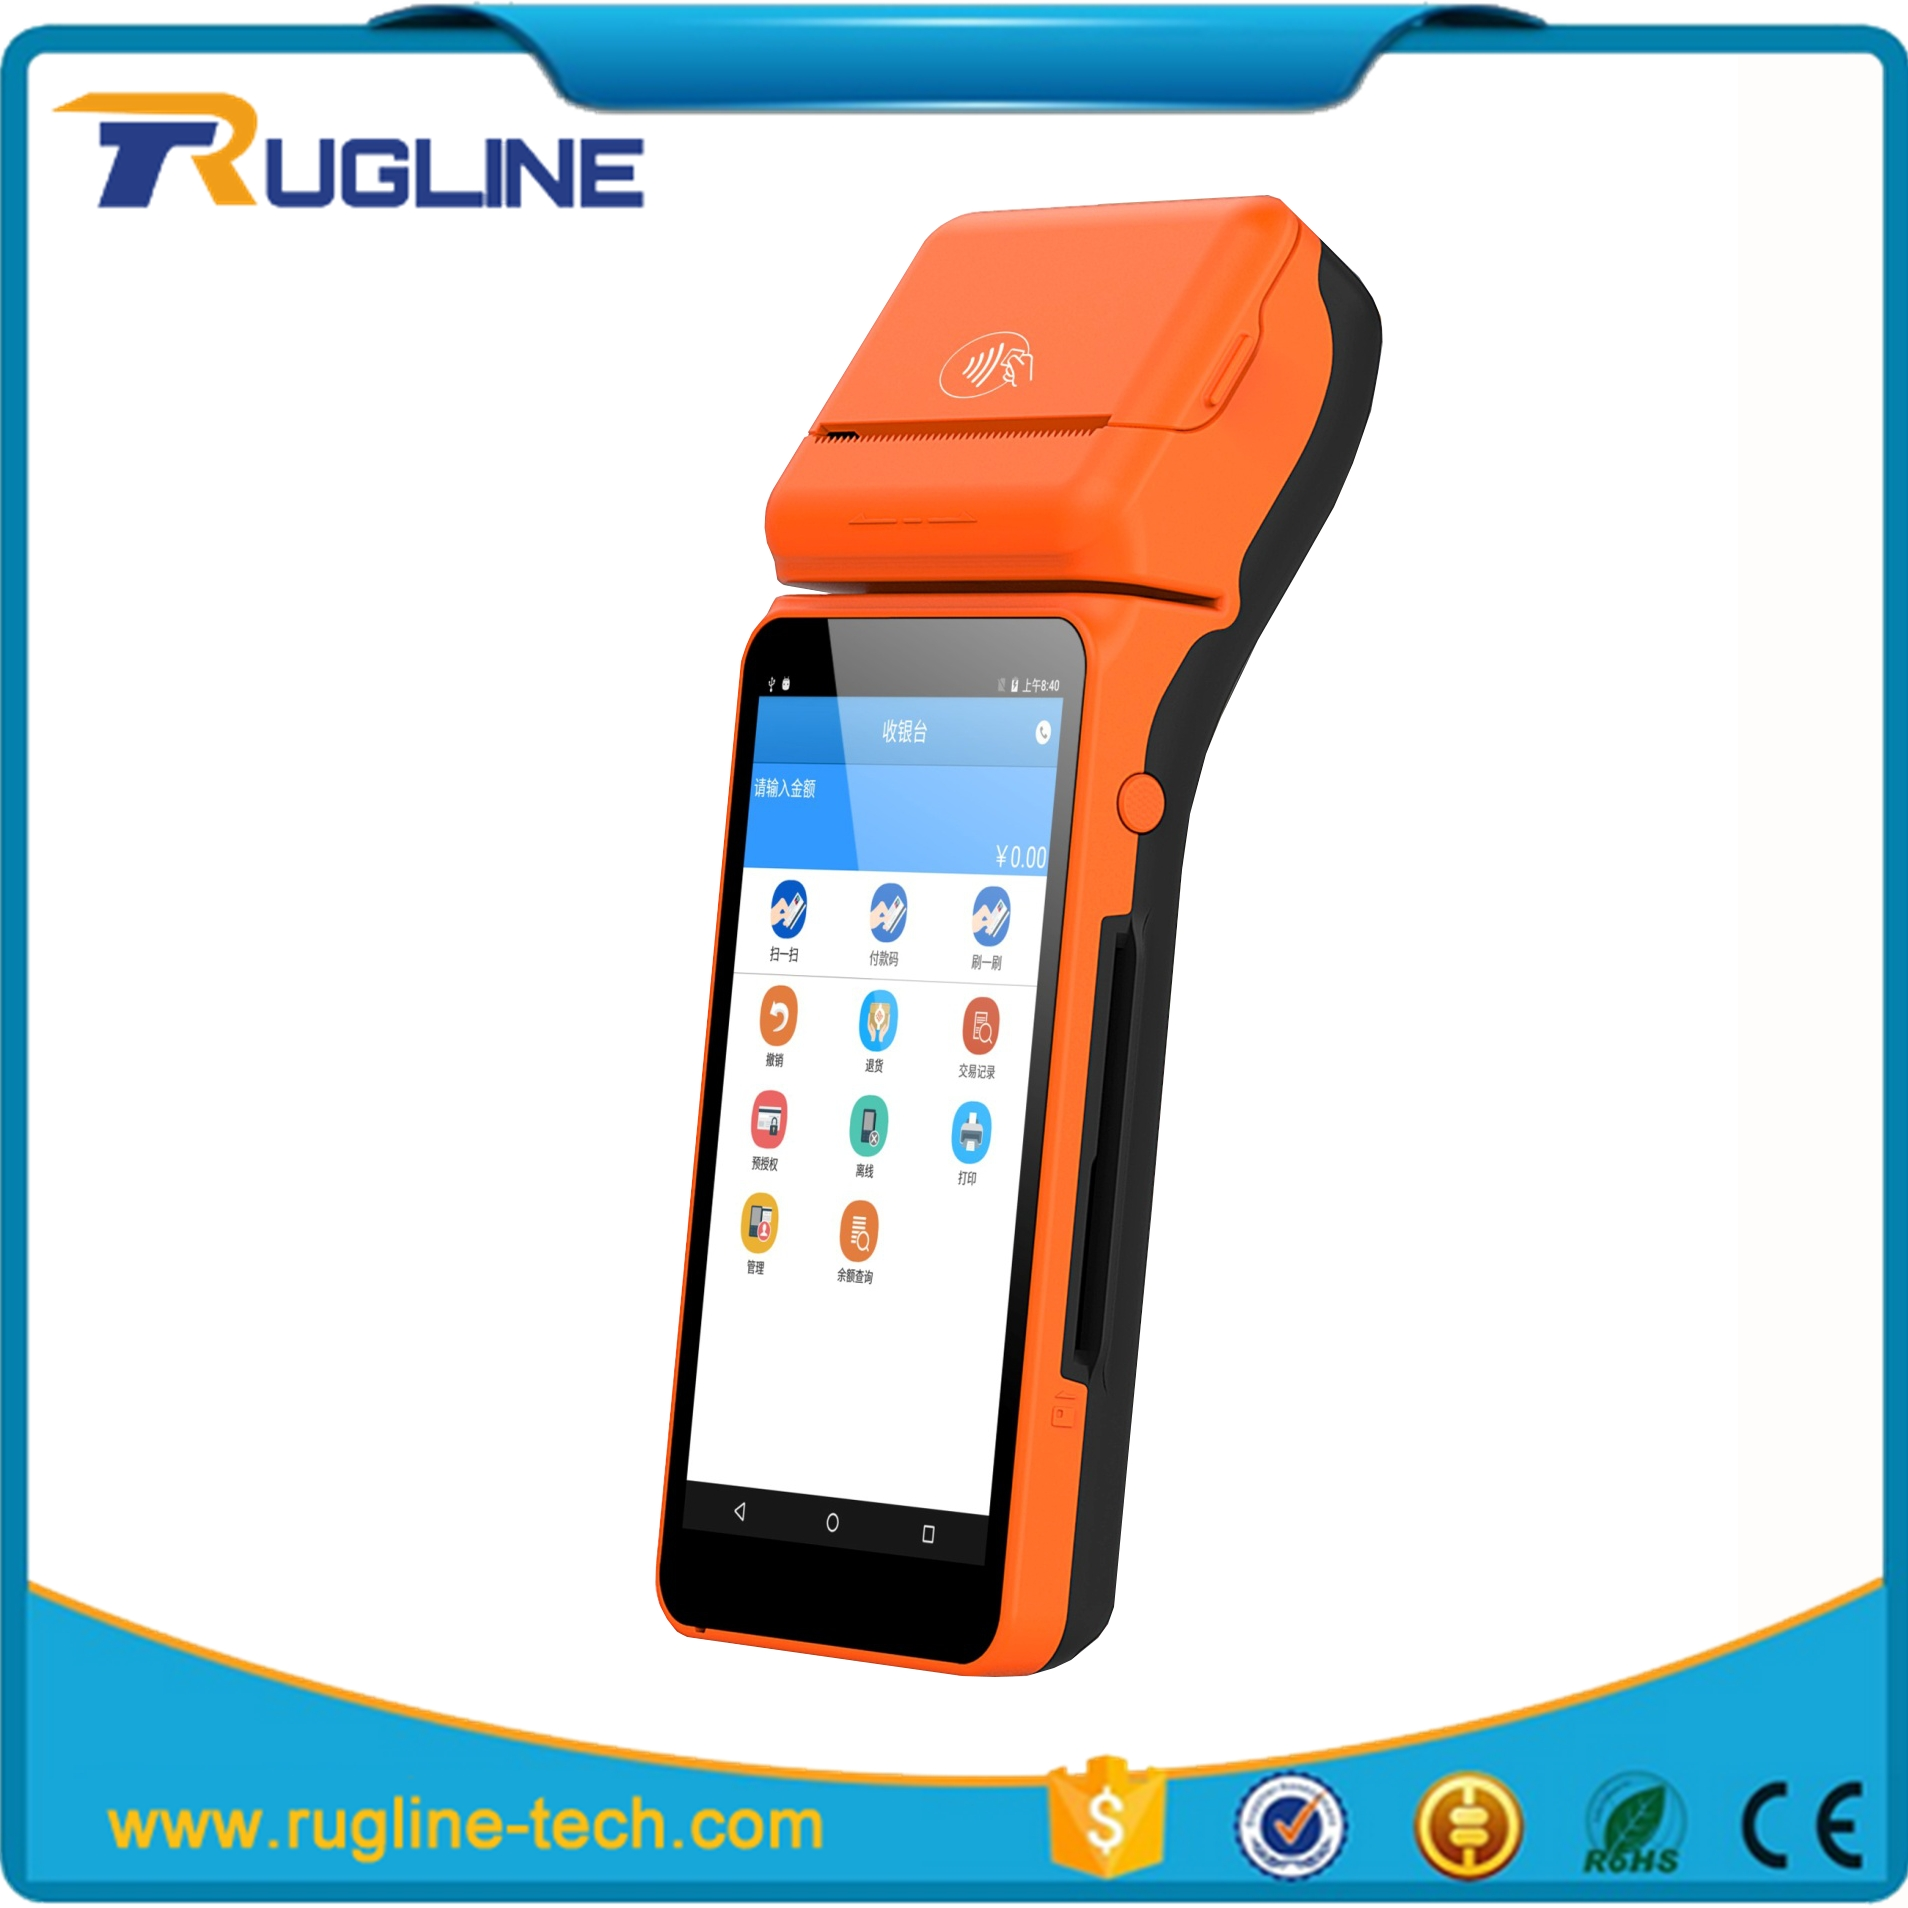 invoice thermal paper roll printing handheld eft pos terminal with nfc reader buy eft pos terminaleft pos terminaleft pos terminal product on handheld devices for invoicing